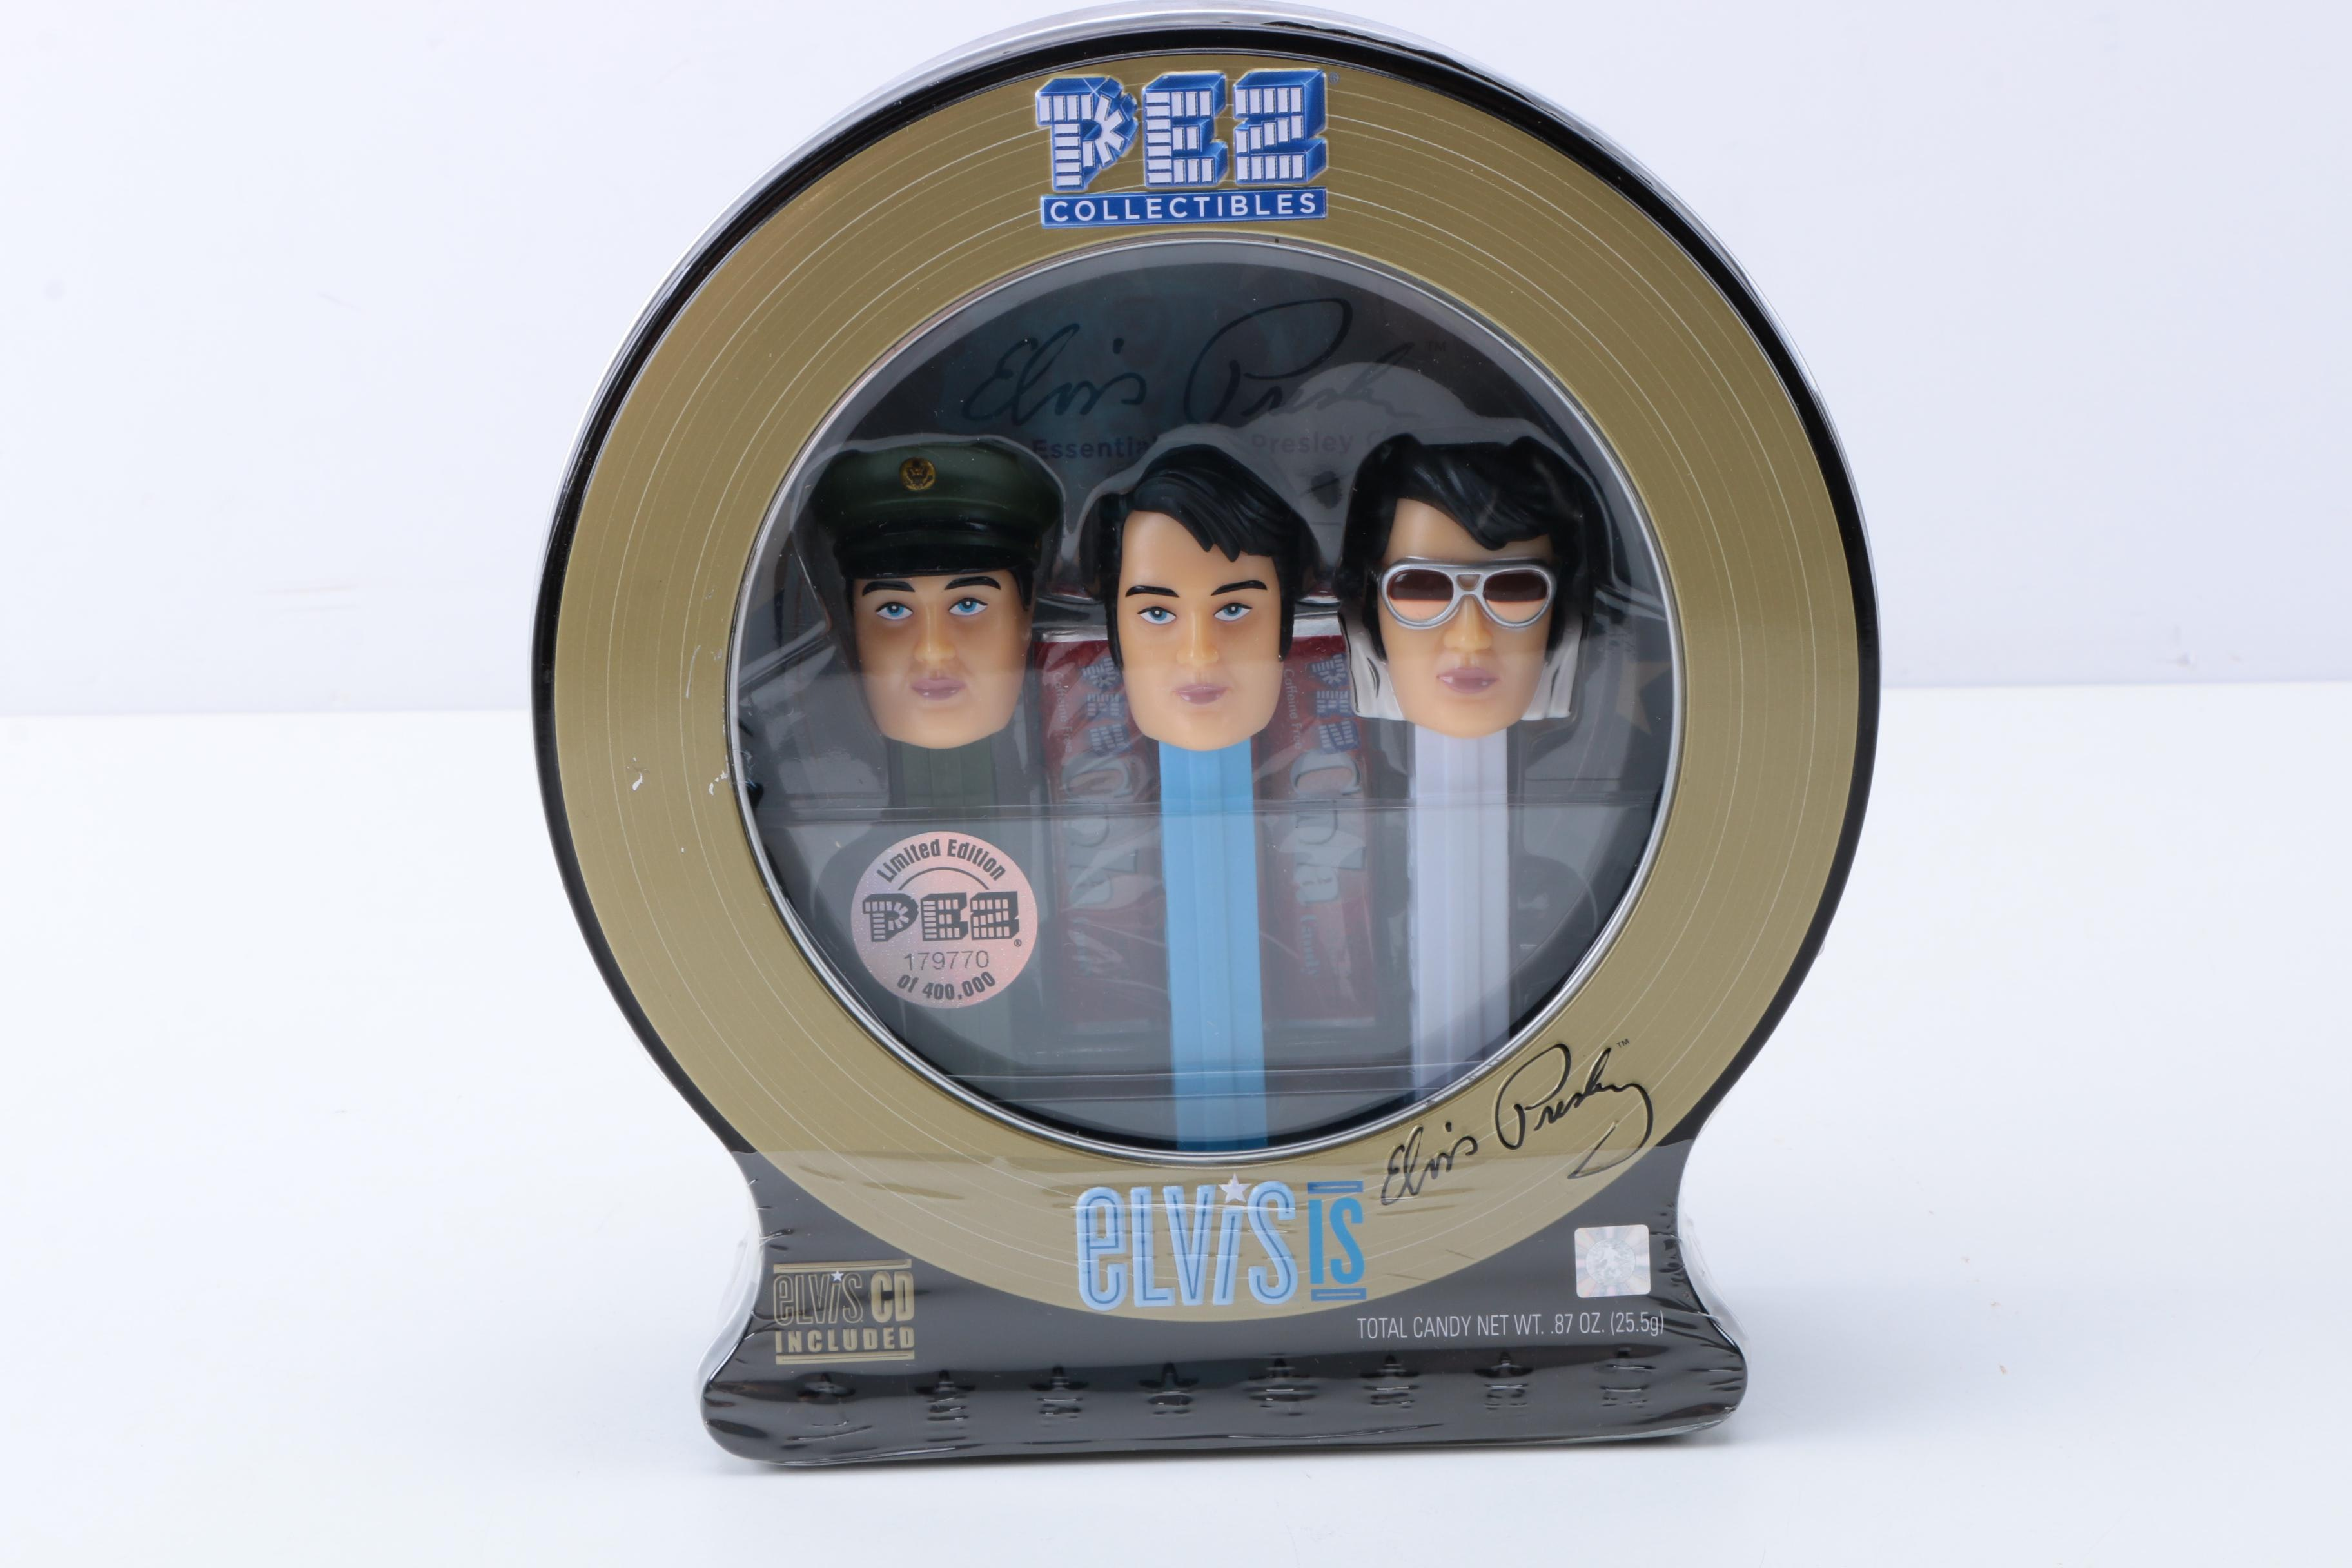 Set of Elvis Presley Limited Edition Collectors Pez Dispensers